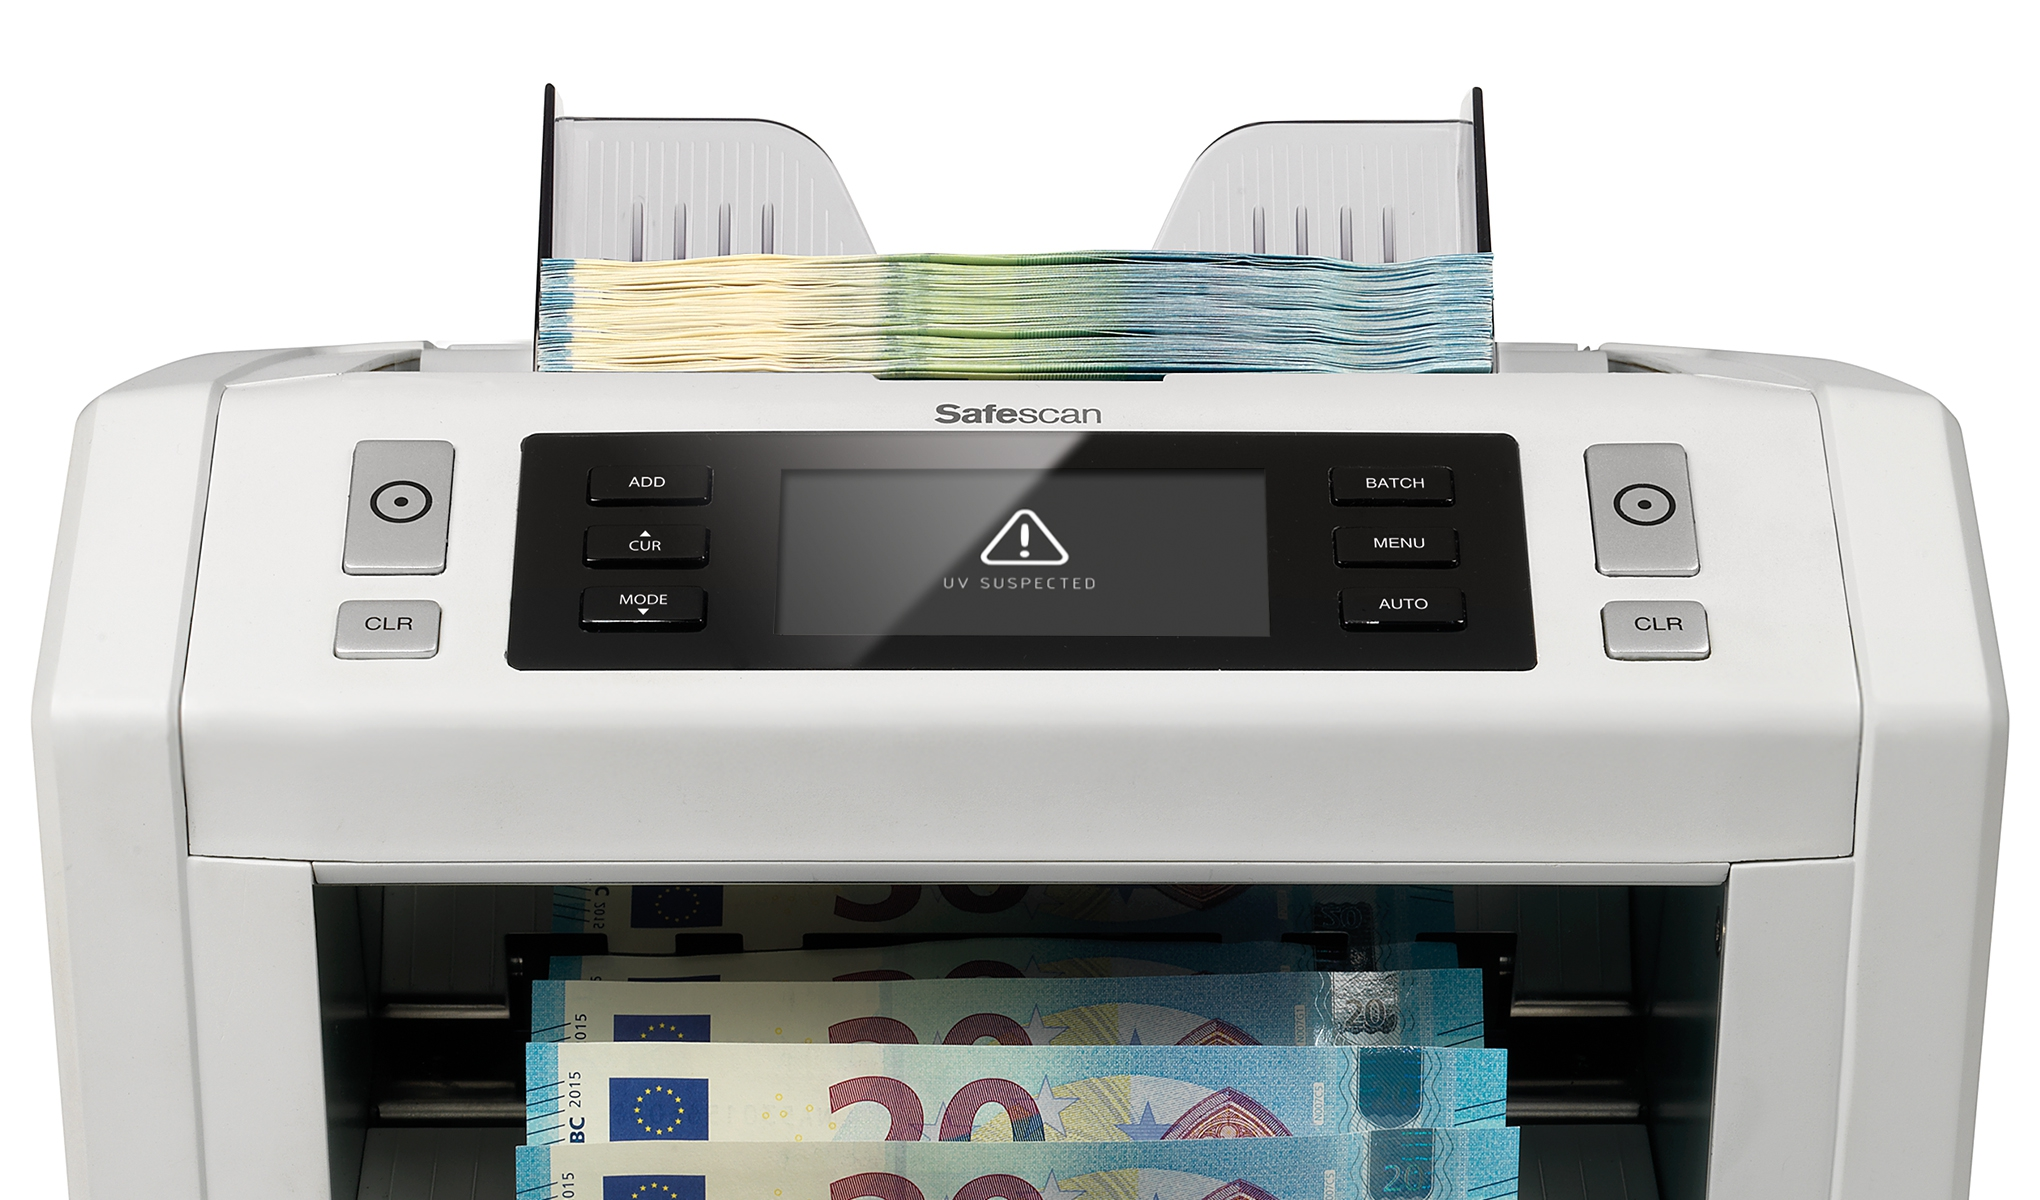 safescan-2660-banknote-counter